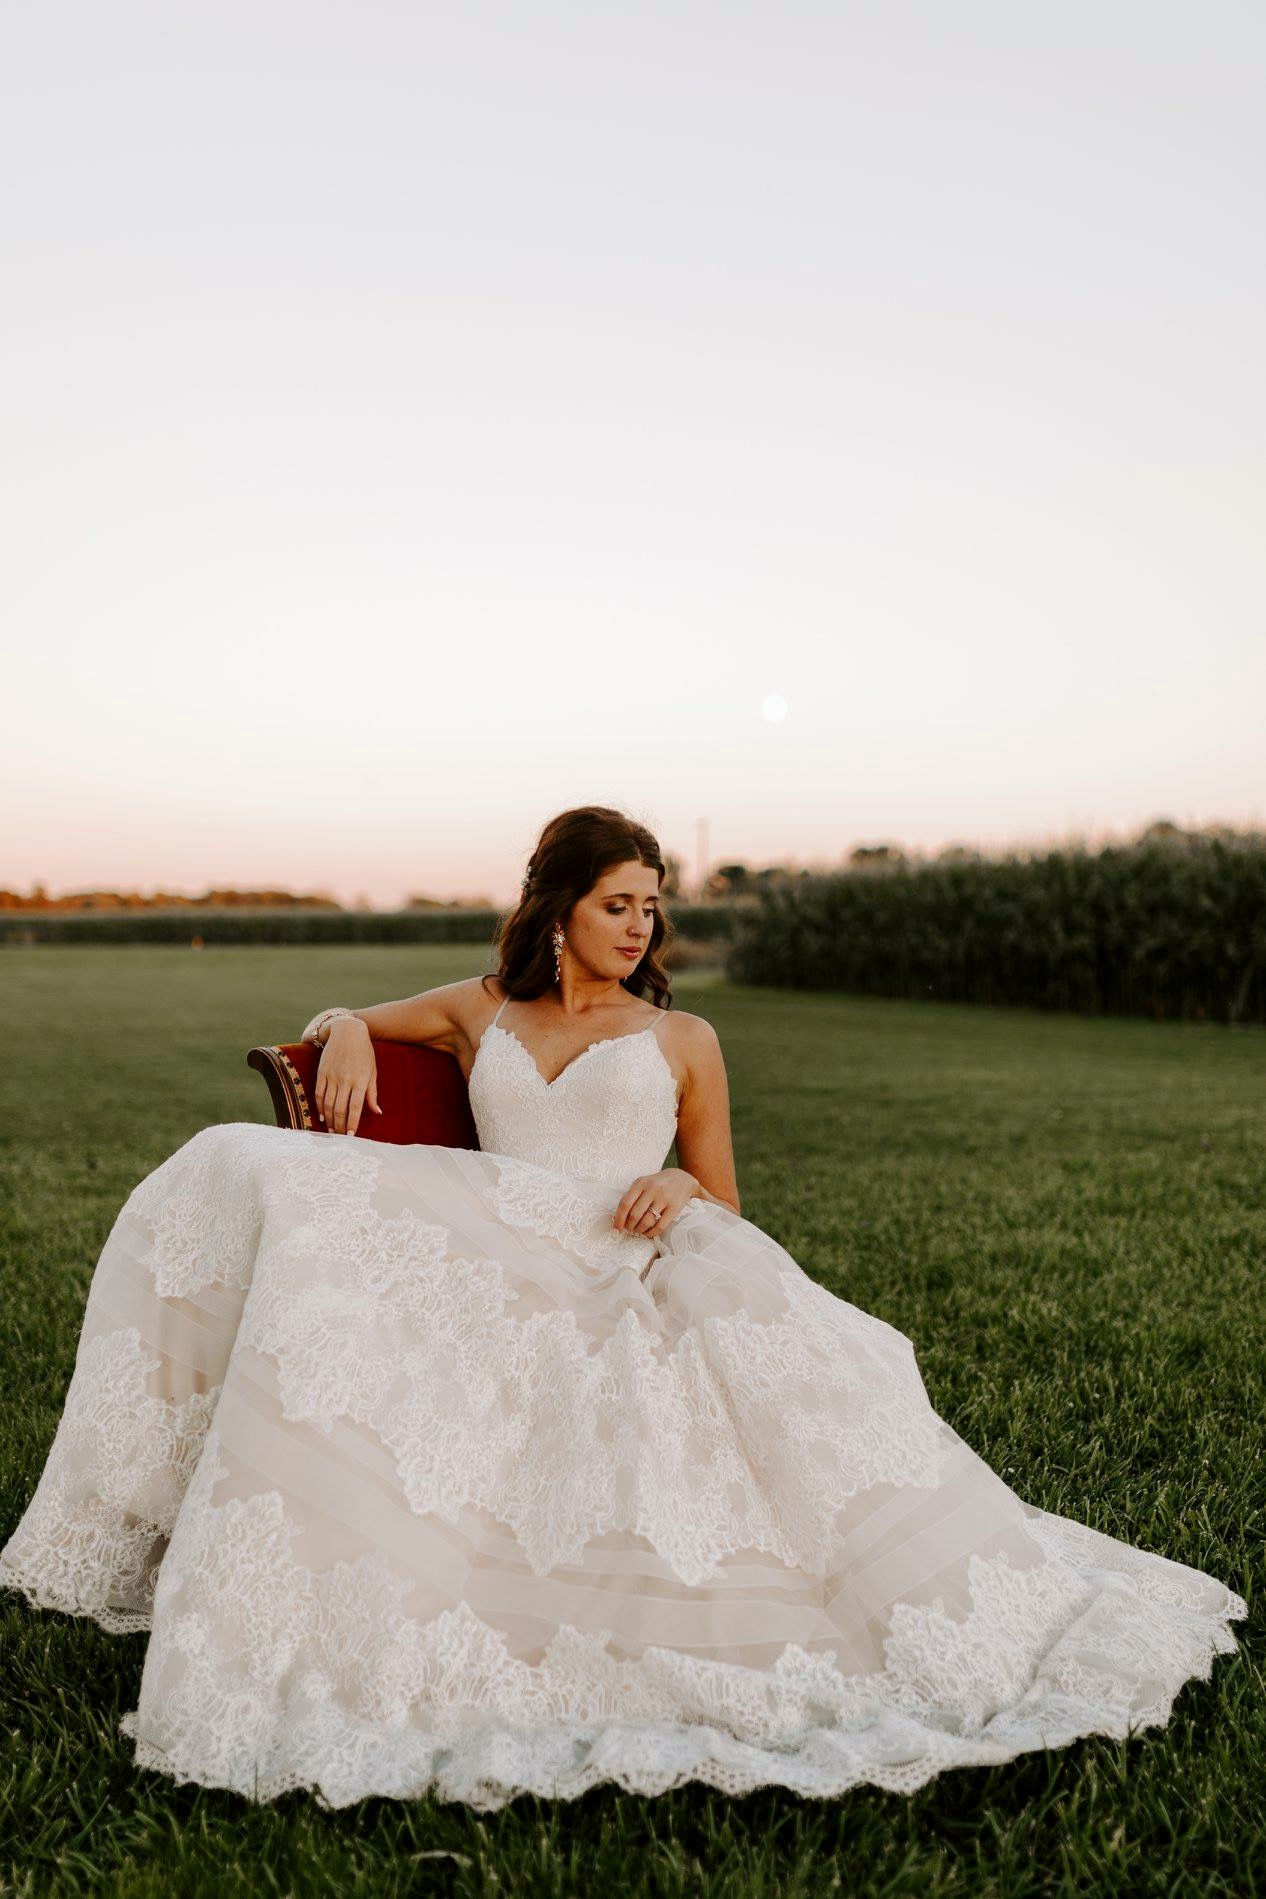 Makeup by Jamie, Photo: White Fence Photography